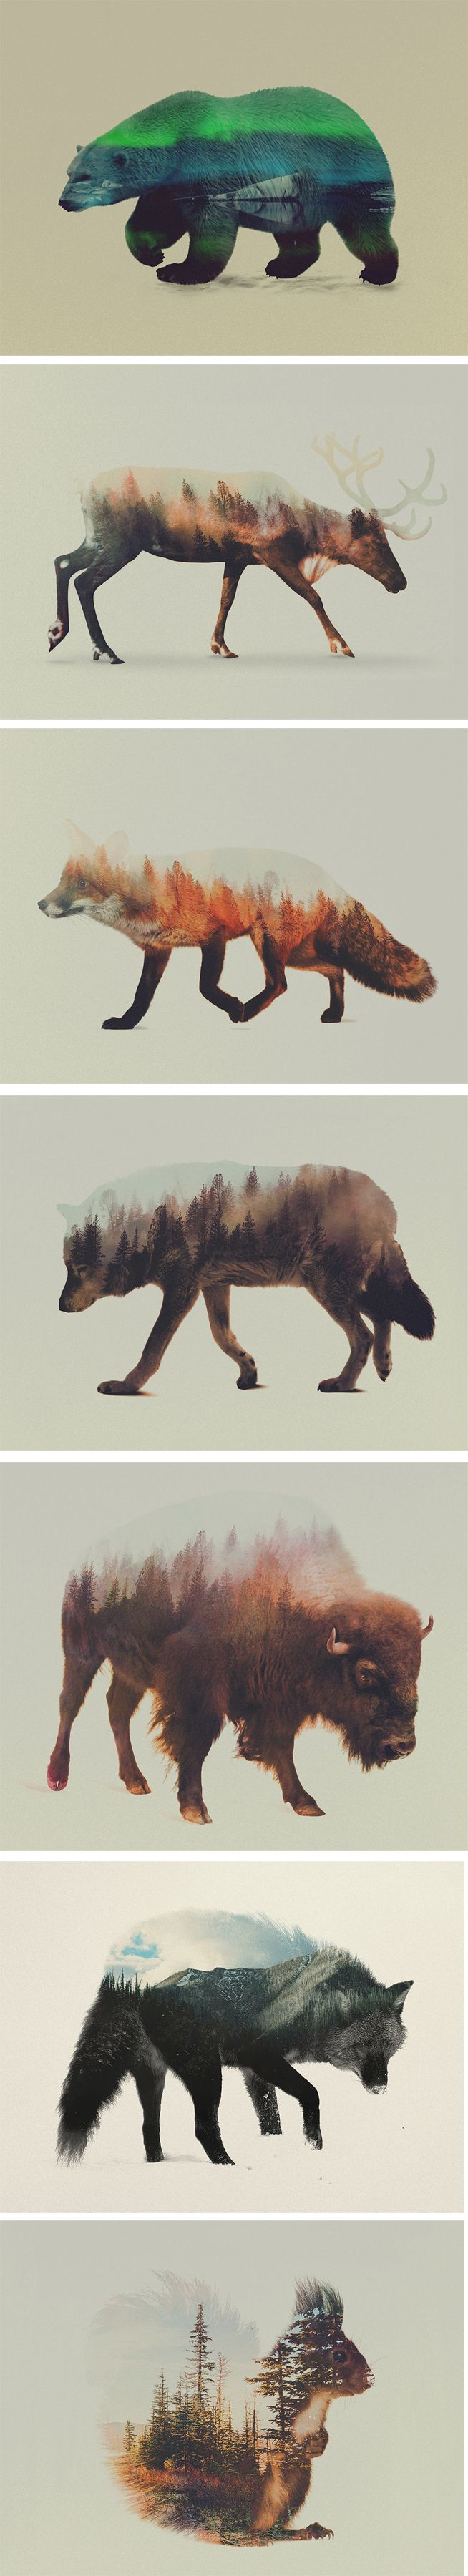 Norwegian visual artist Andreas Lie merges verdant landscapes and photographs of animals to creates subtle double exposure portraits. Snowy mountain peaks and thick forests become the shaggy fur of wolves and foxes, and even the northern lights appear through the silhouette of a polar bear.